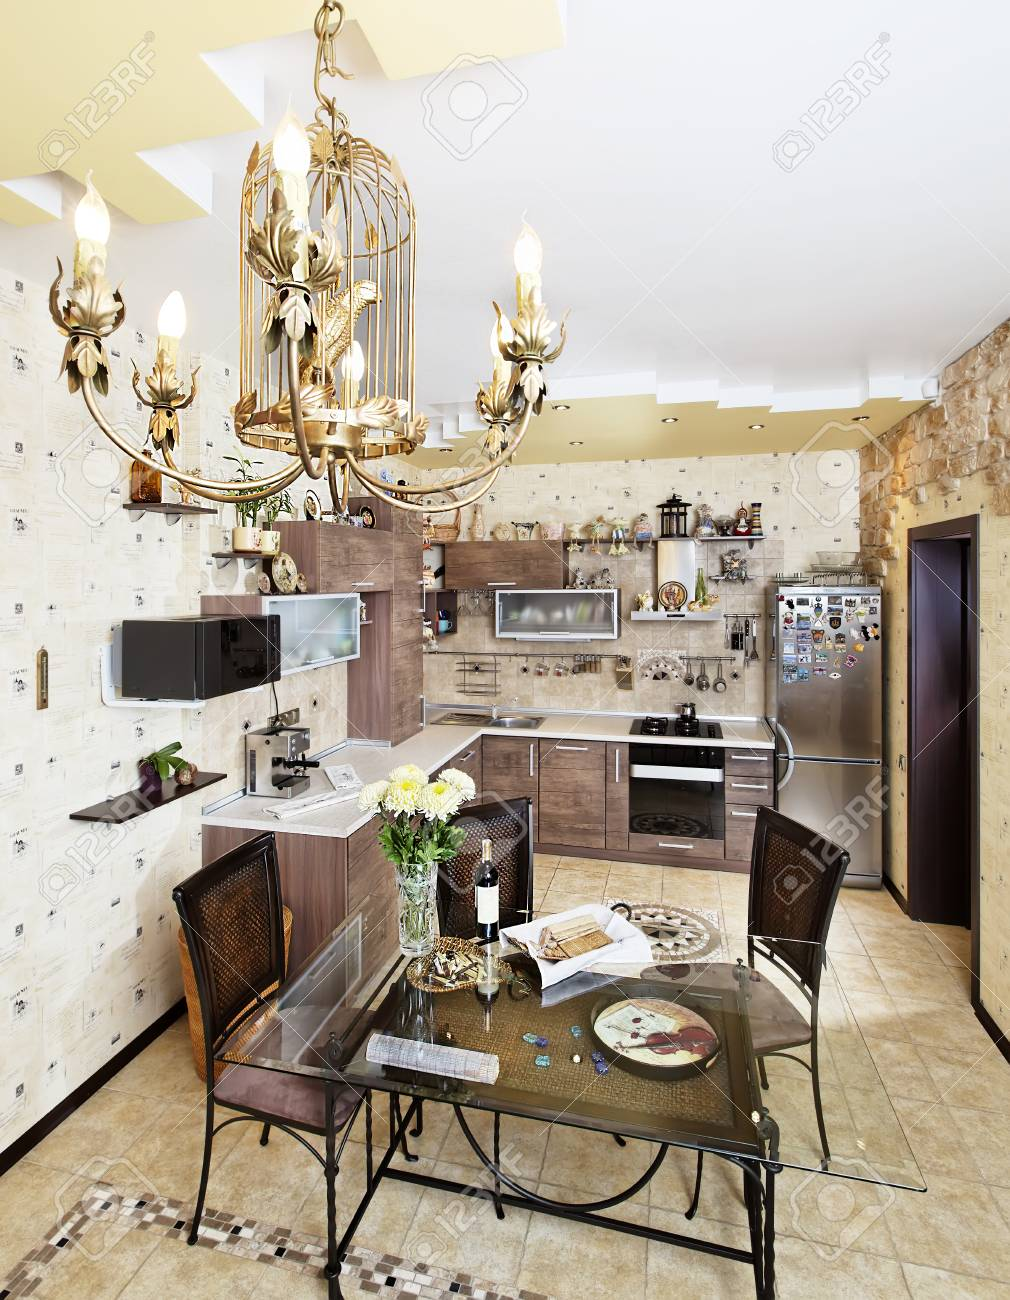 beautiful wooden kitchen with dinner table and chairs in yellow rh 123rf com kitchen dining table and chairs argos Diner Table and Chairs